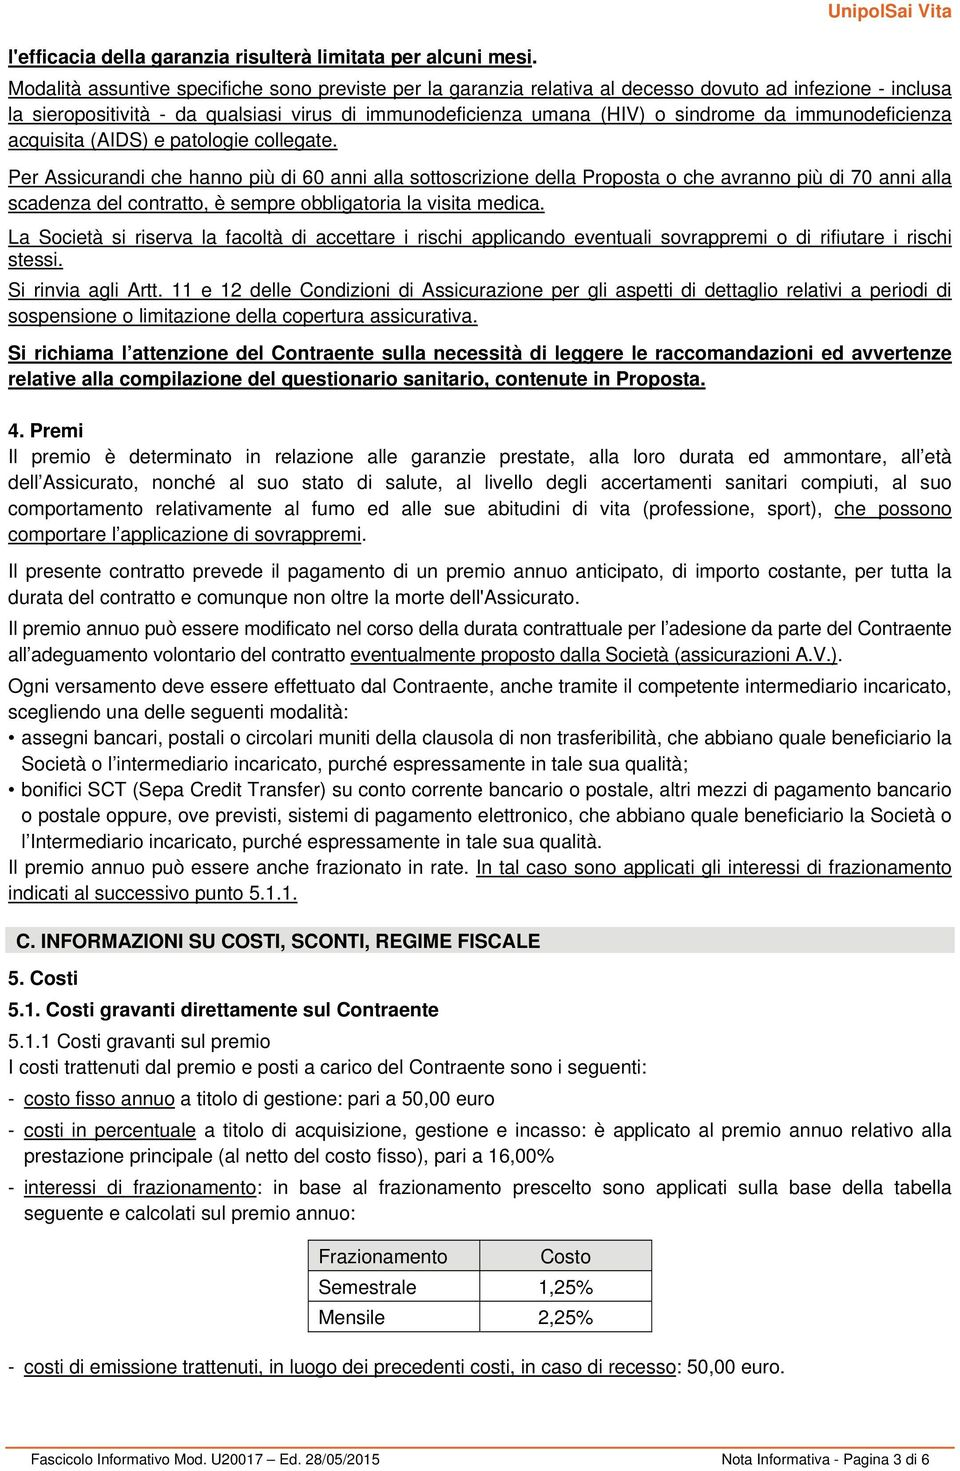 immunodeficienza acquisita (AIDS) e patologie collegate.